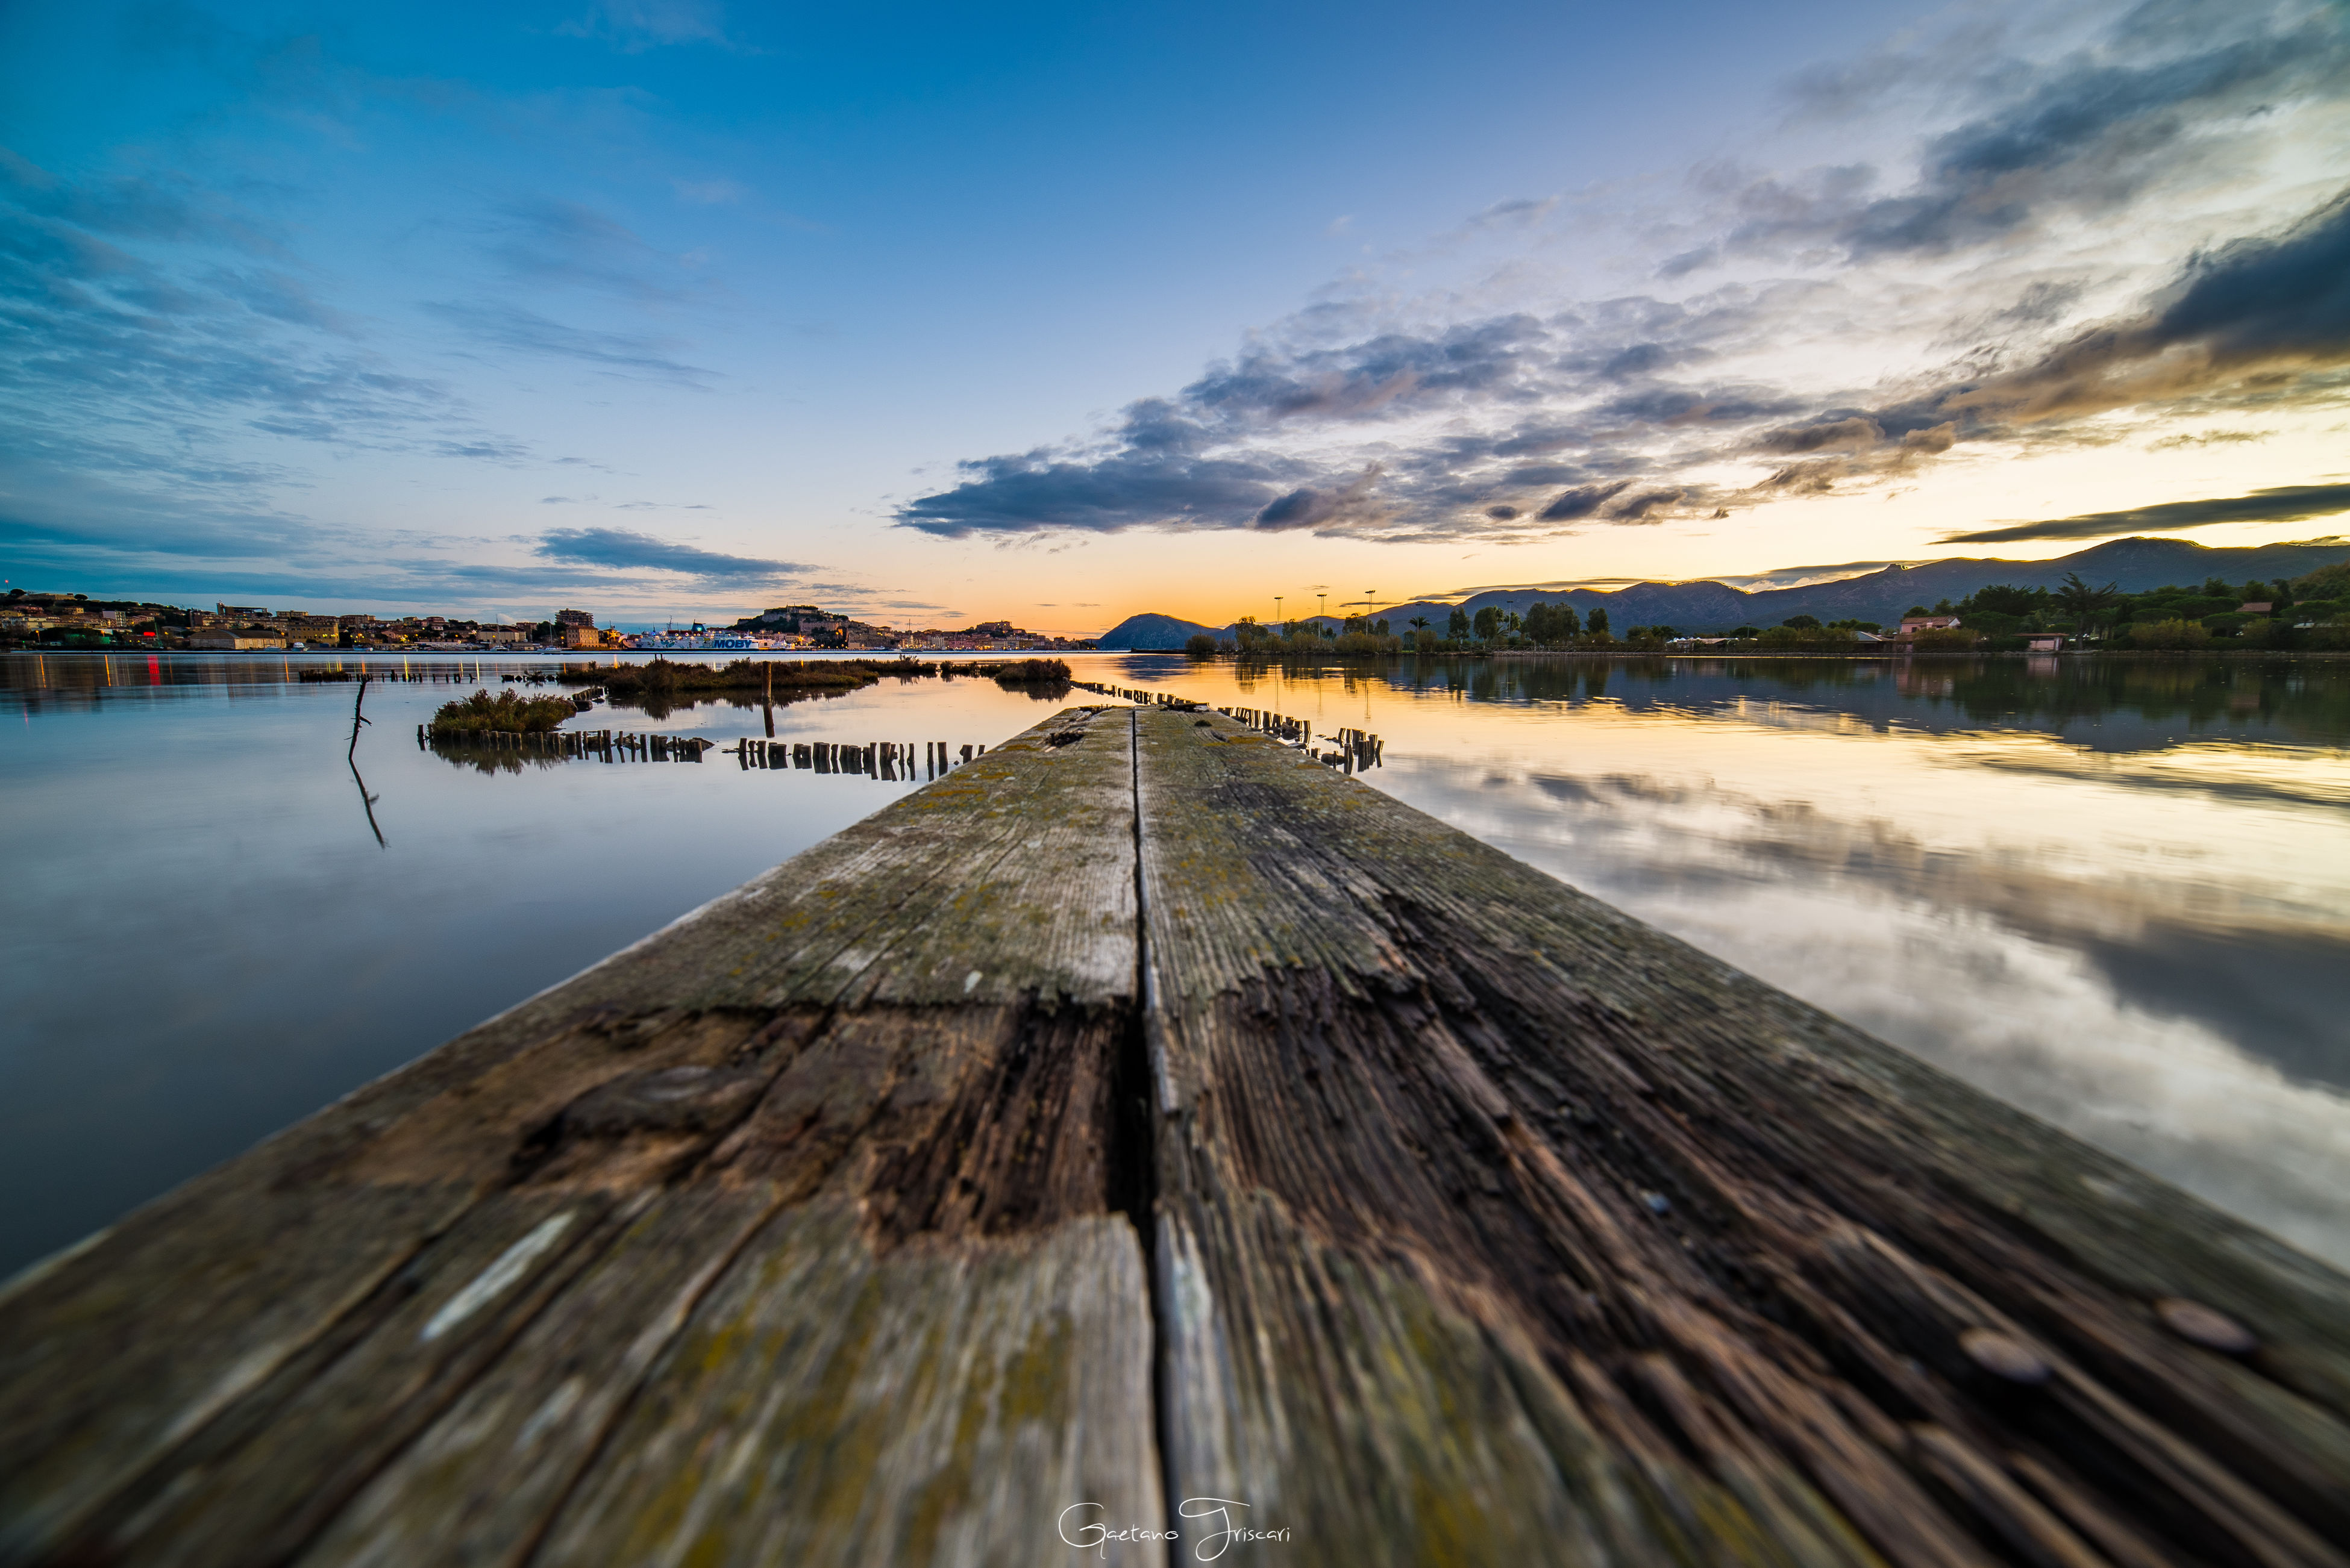 water, sky, pier, built structure, cloud - sky, sea, architecture, jetty, wood - material, cloud, reflection, cloudy, lake, sunset, dusk, waterfront, nature, scenics, tranquil scene, tranquility